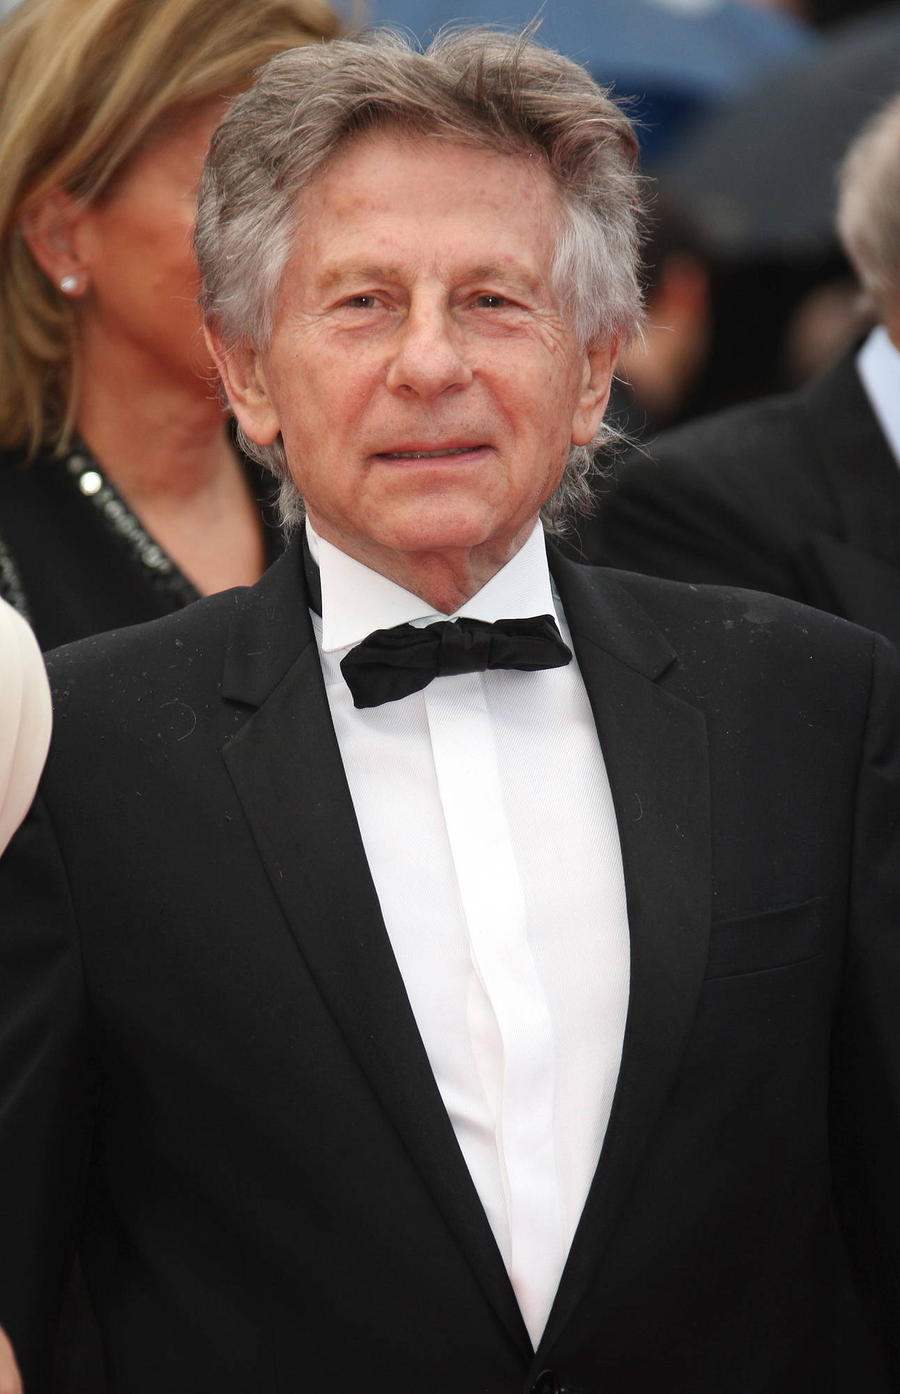 Roman Polanski Granted Hearing To Unseal Key Documents In Historic Sex Case